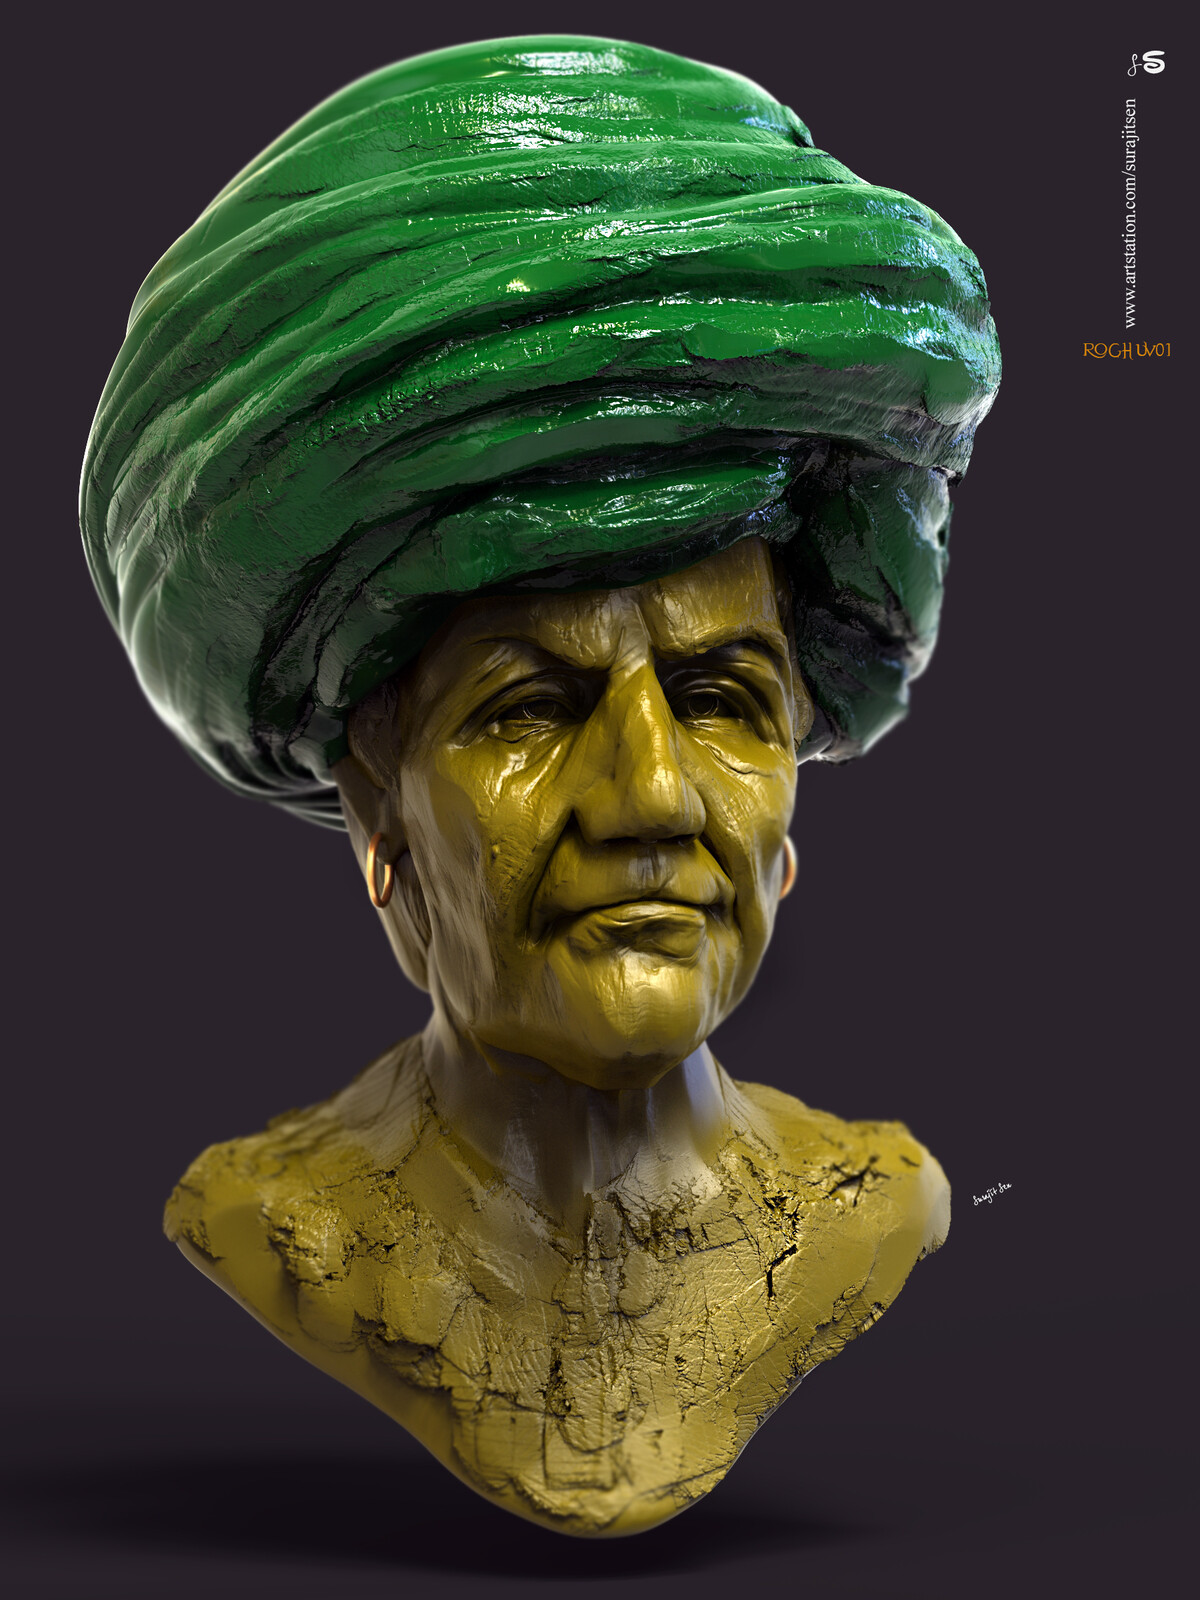 One of my Digital Sculptures... Played with brushes. Raghu02